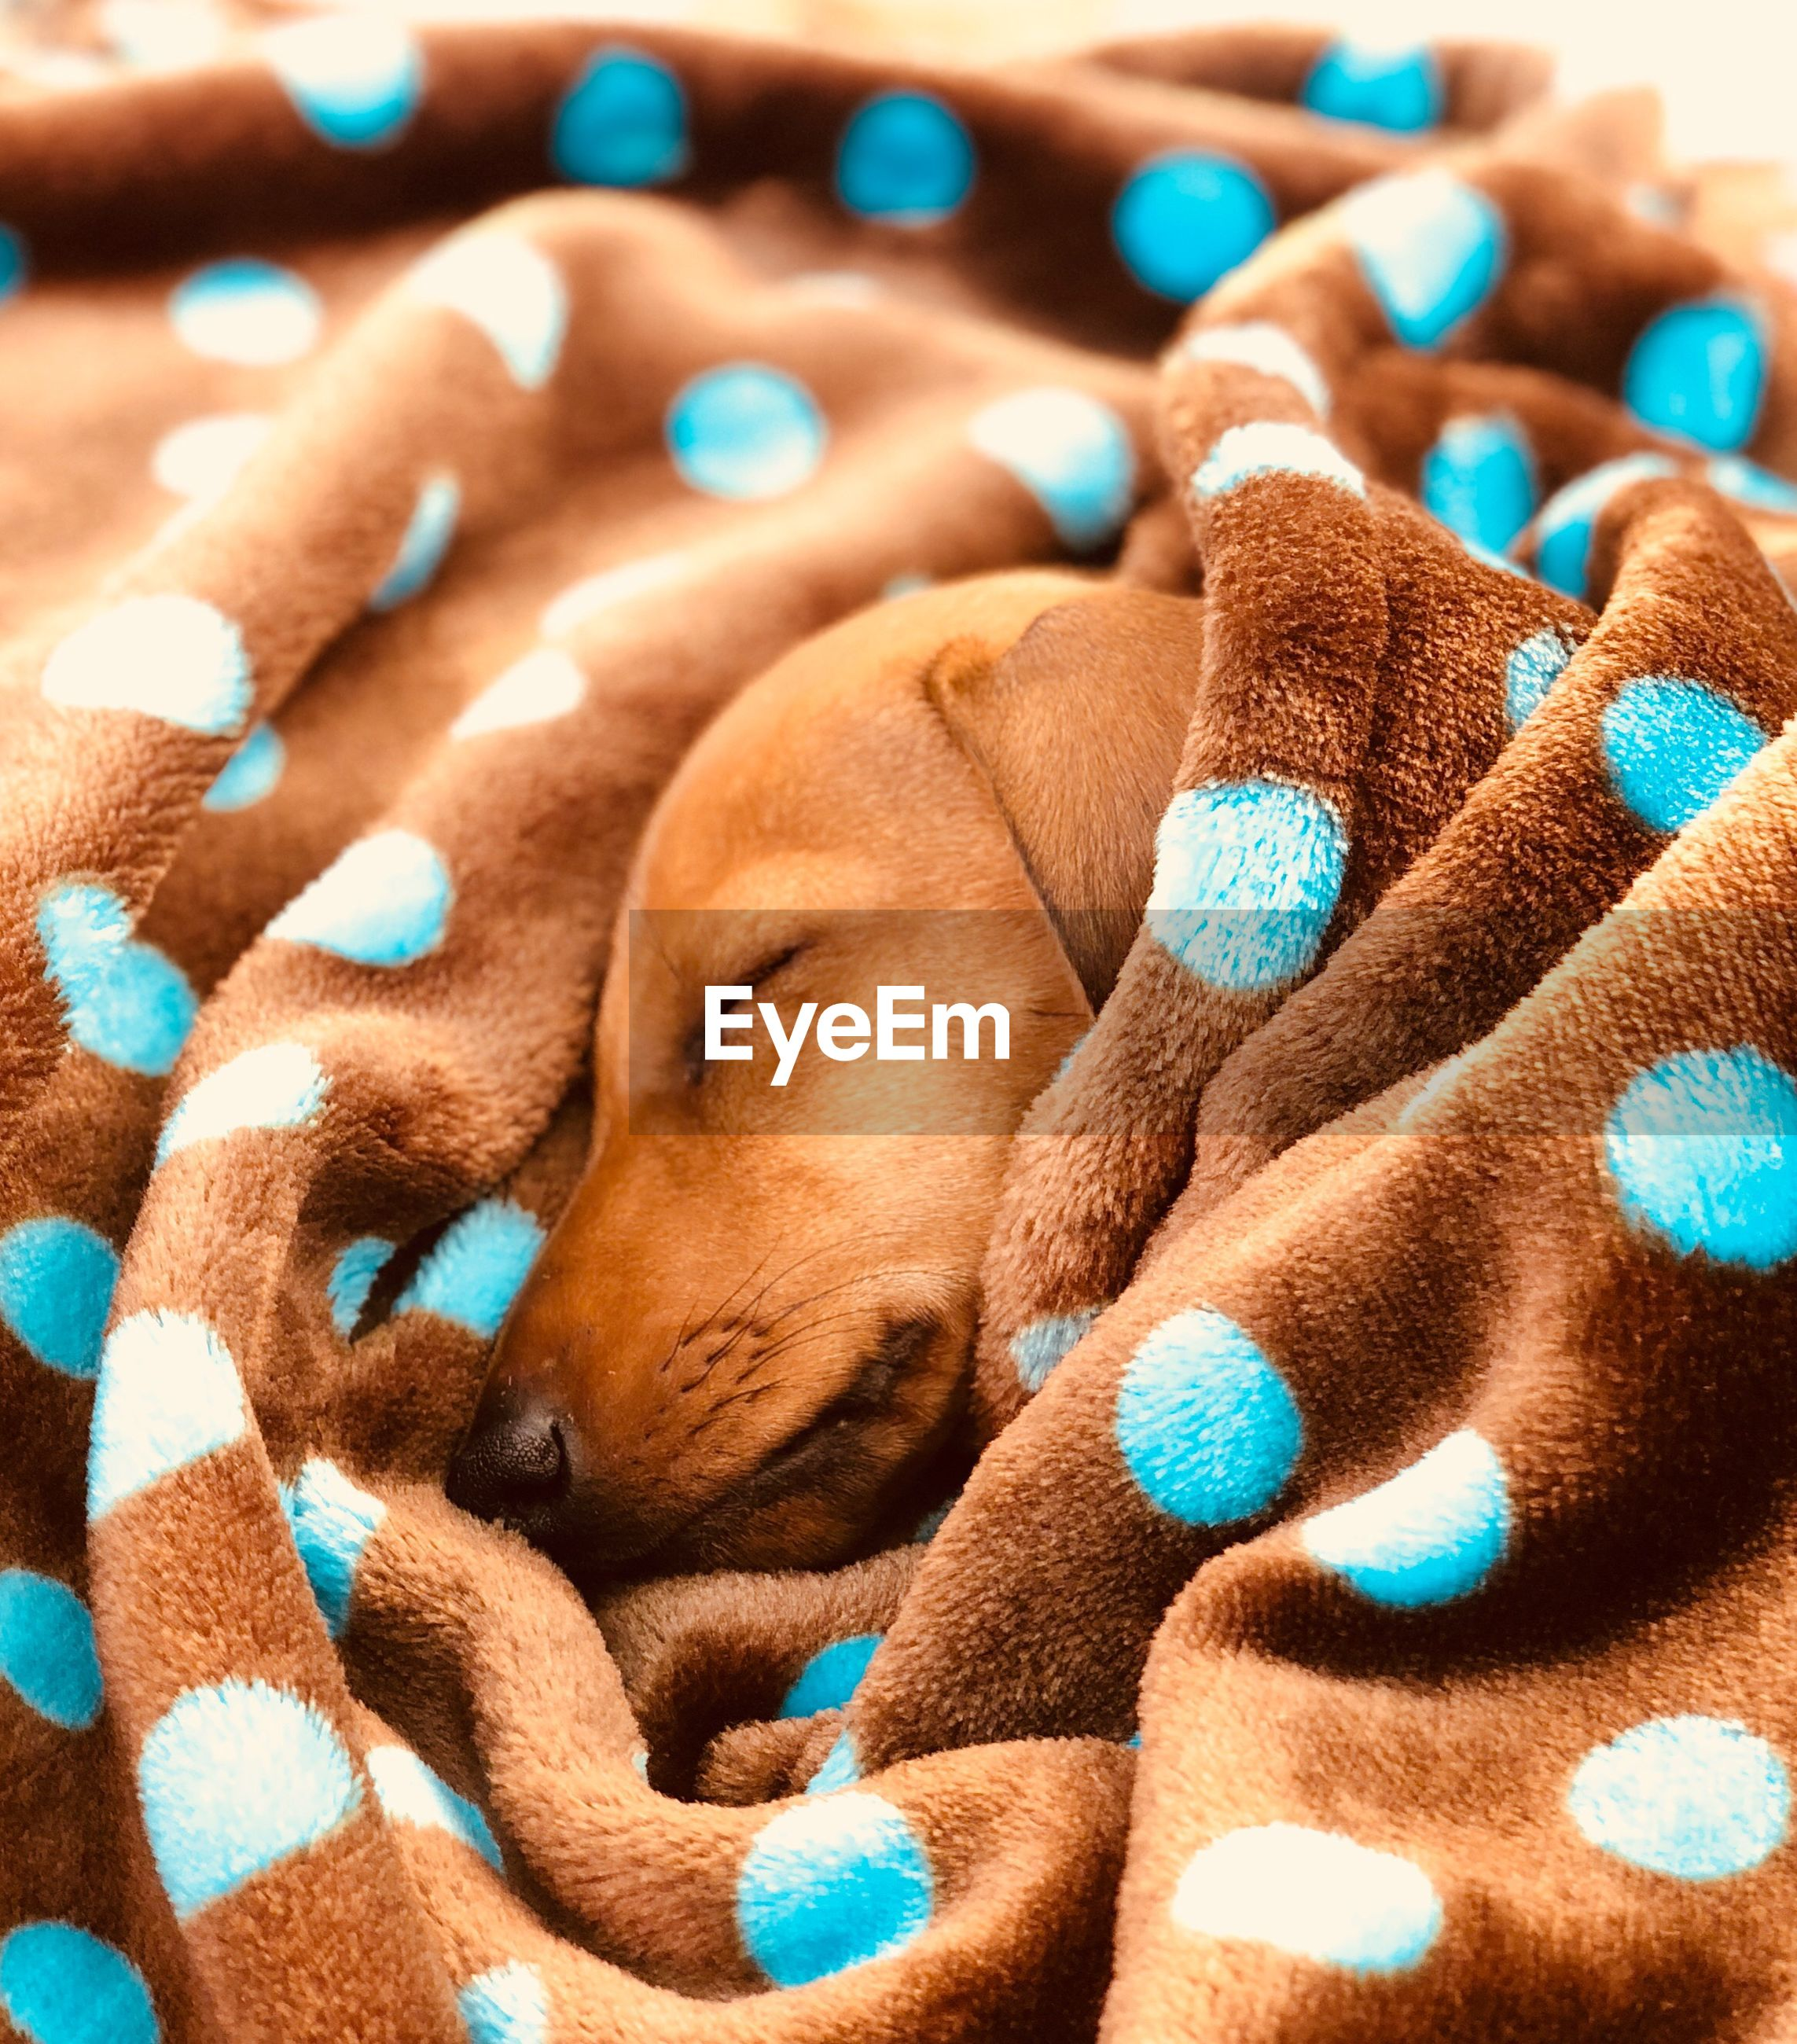 CLOSE-UP OF A DOG SLEEPING WITH COLORFUL TOY